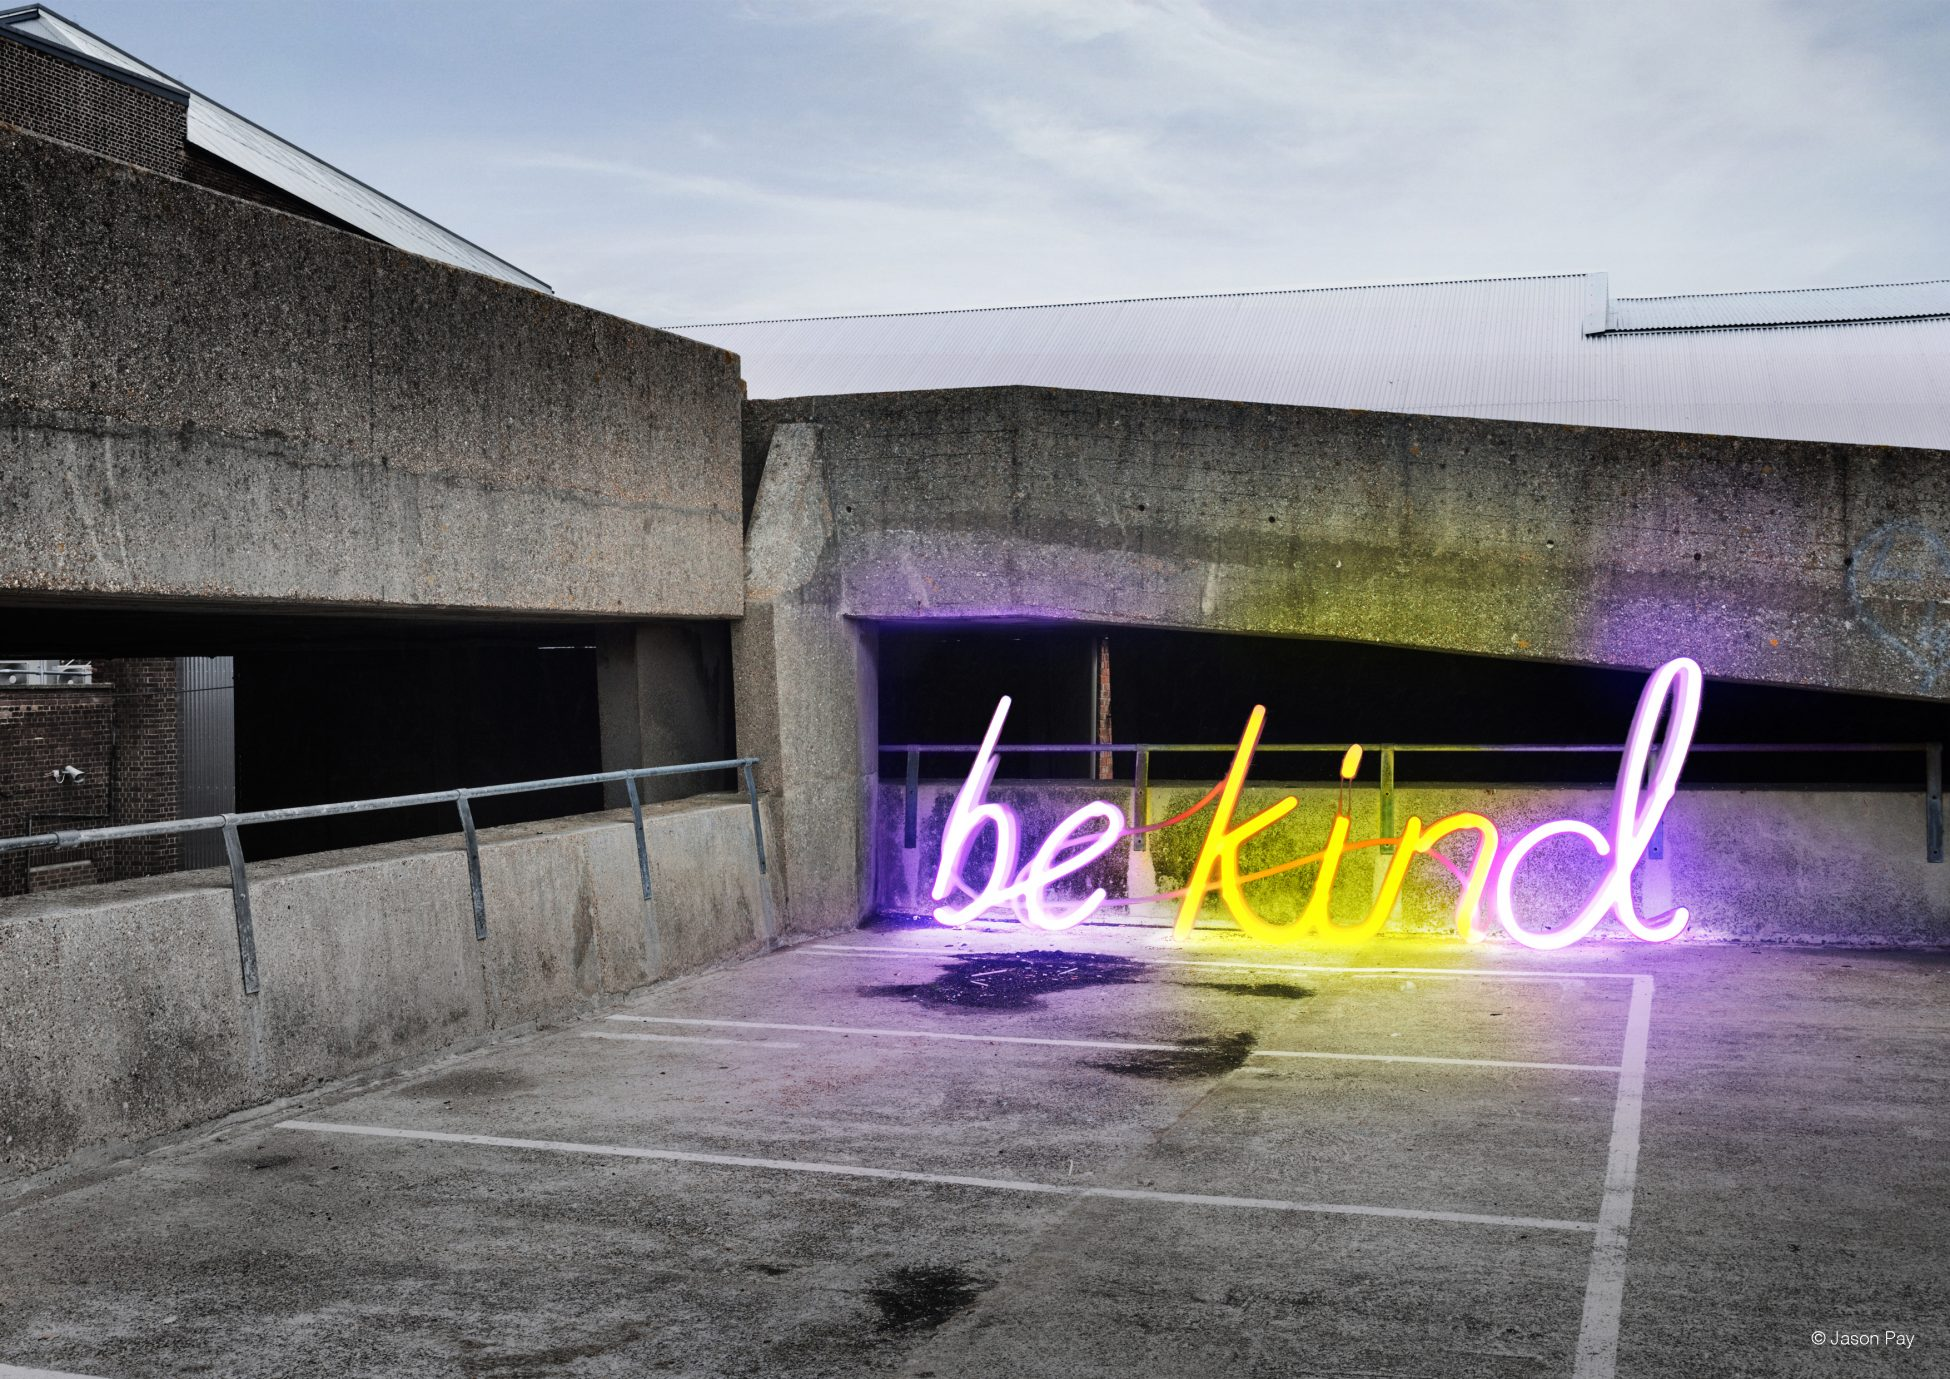 A photo of the upper level of a concrete car park with a large neon sign spelling out